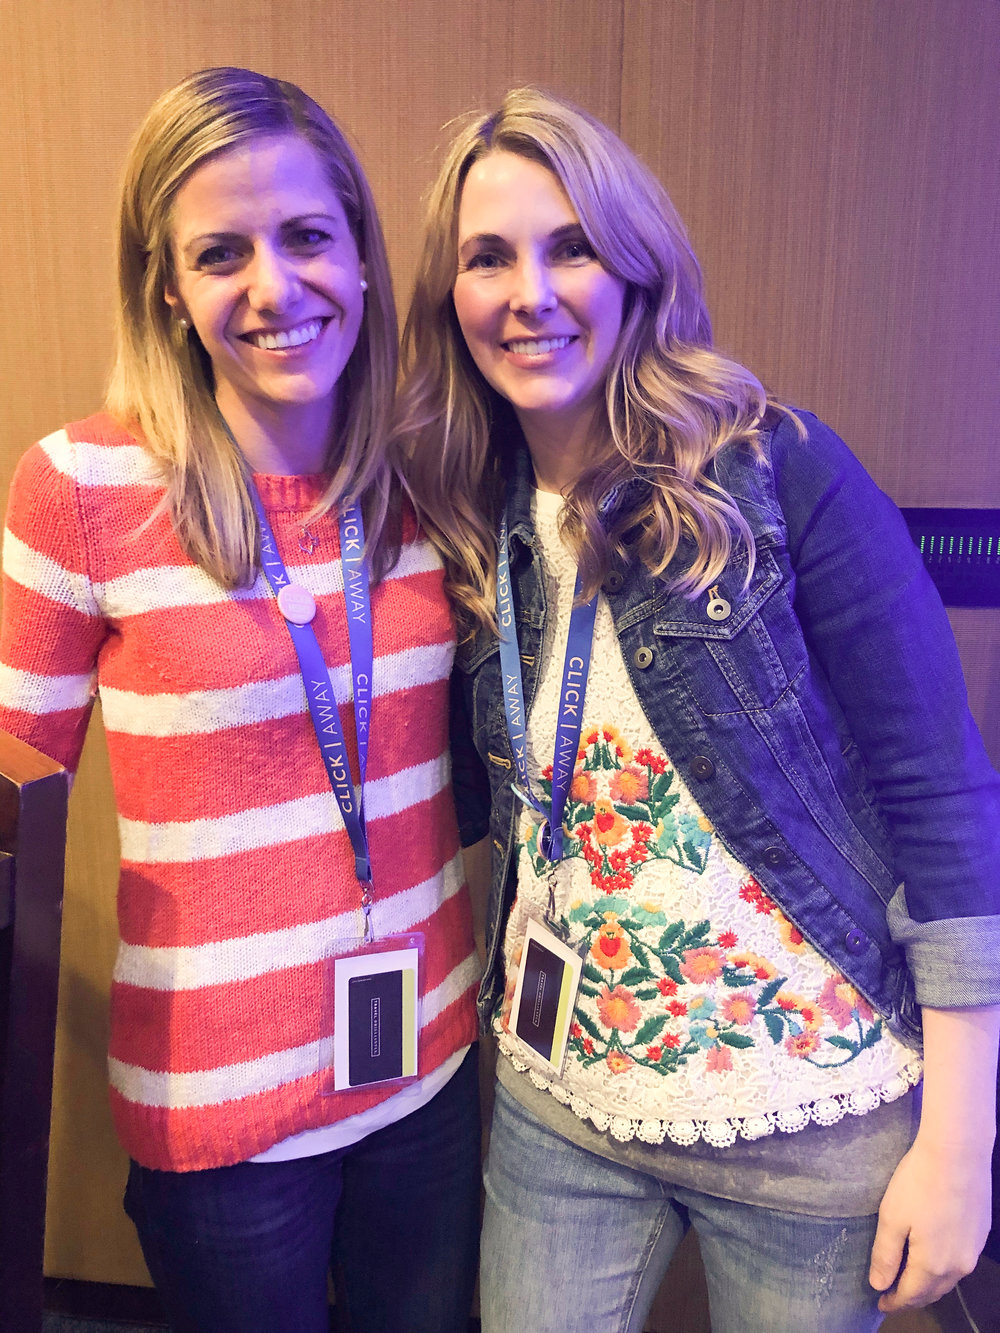 Total fangirl moment: Asking Meg Loeks for a photo after picking her brain about staying visually consistent throughout changing seasons.